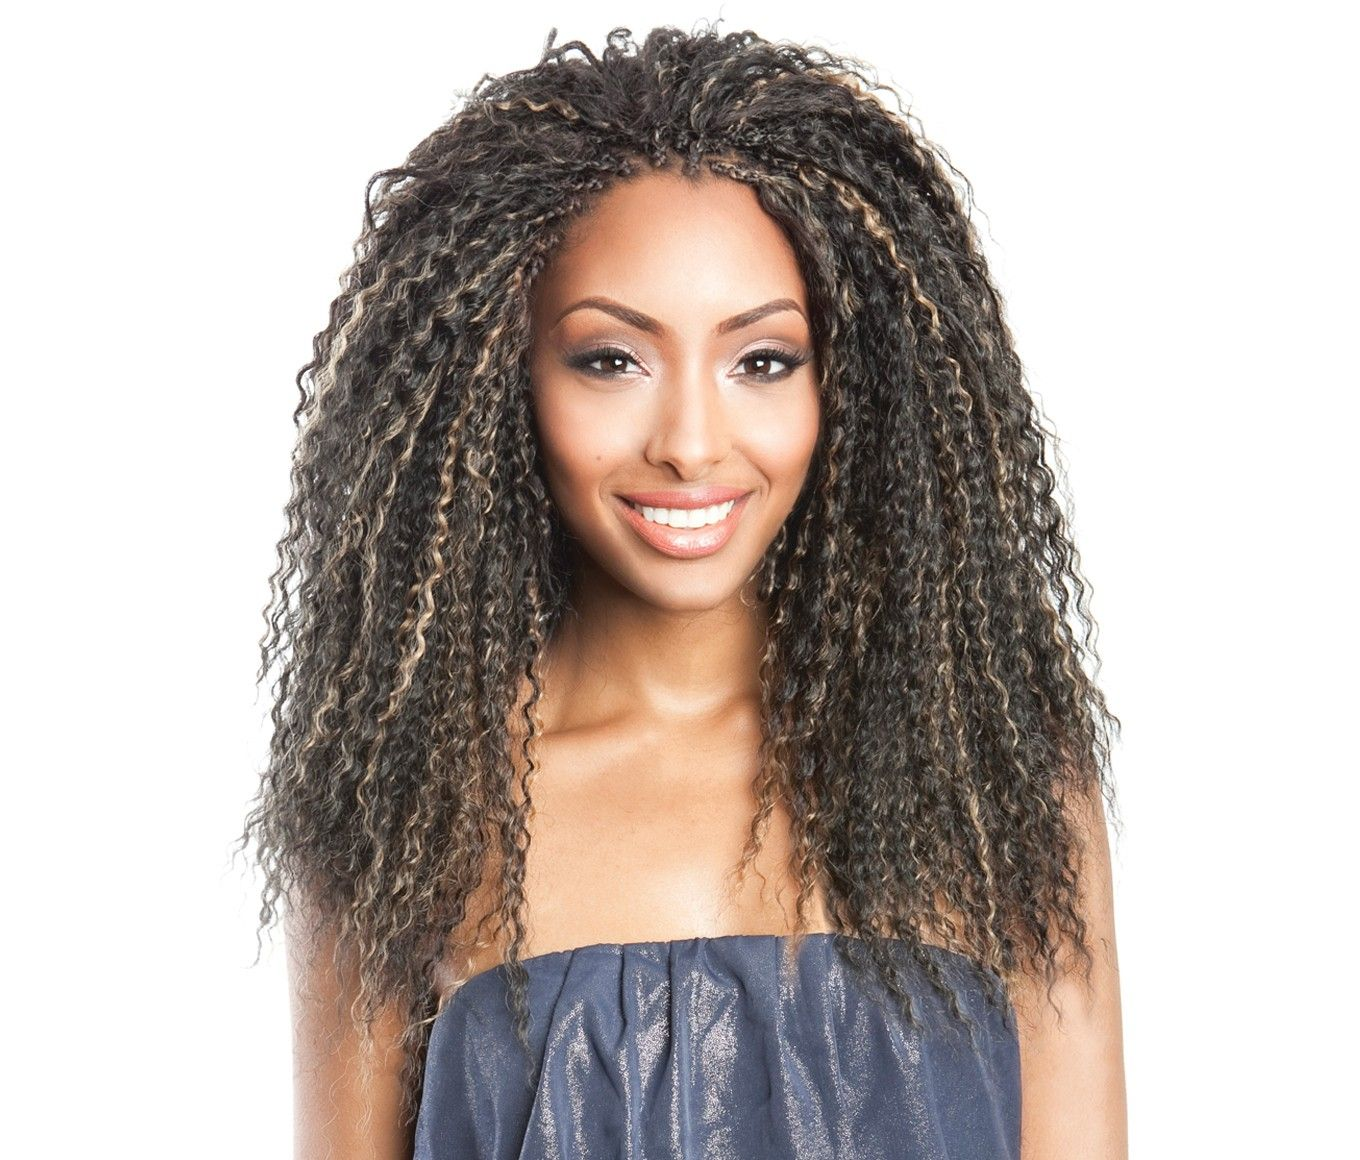 Luxurious Hair Boutique Aka Luxe Beauty Supply Carries The Best Selection Of Top Quality Crochet And Kanekalon Braiding At Lowest Prices Online